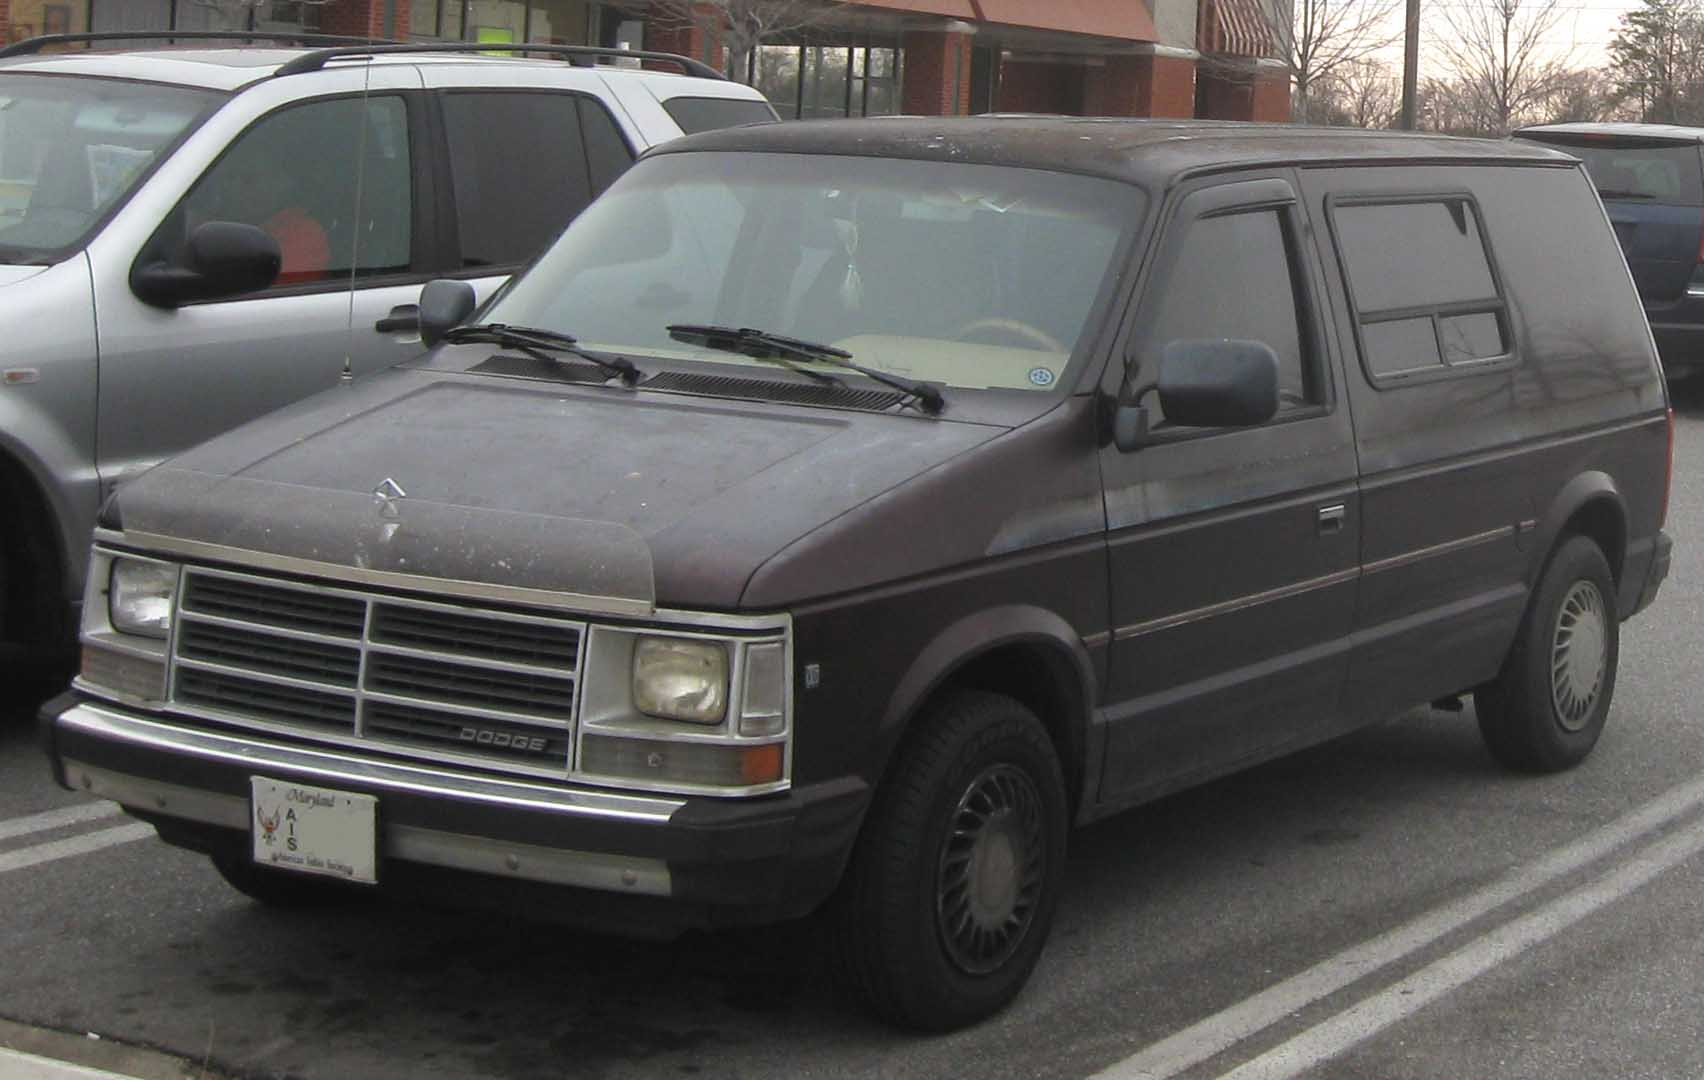 1986 plymouth voyager with File Dodge Caravan Cv on 6334 1992 Dodge Caravan 3 in addition Gallery detail in addition RepairGuideContent besides RepairGuideContent besides List of Plymouth vehicles.